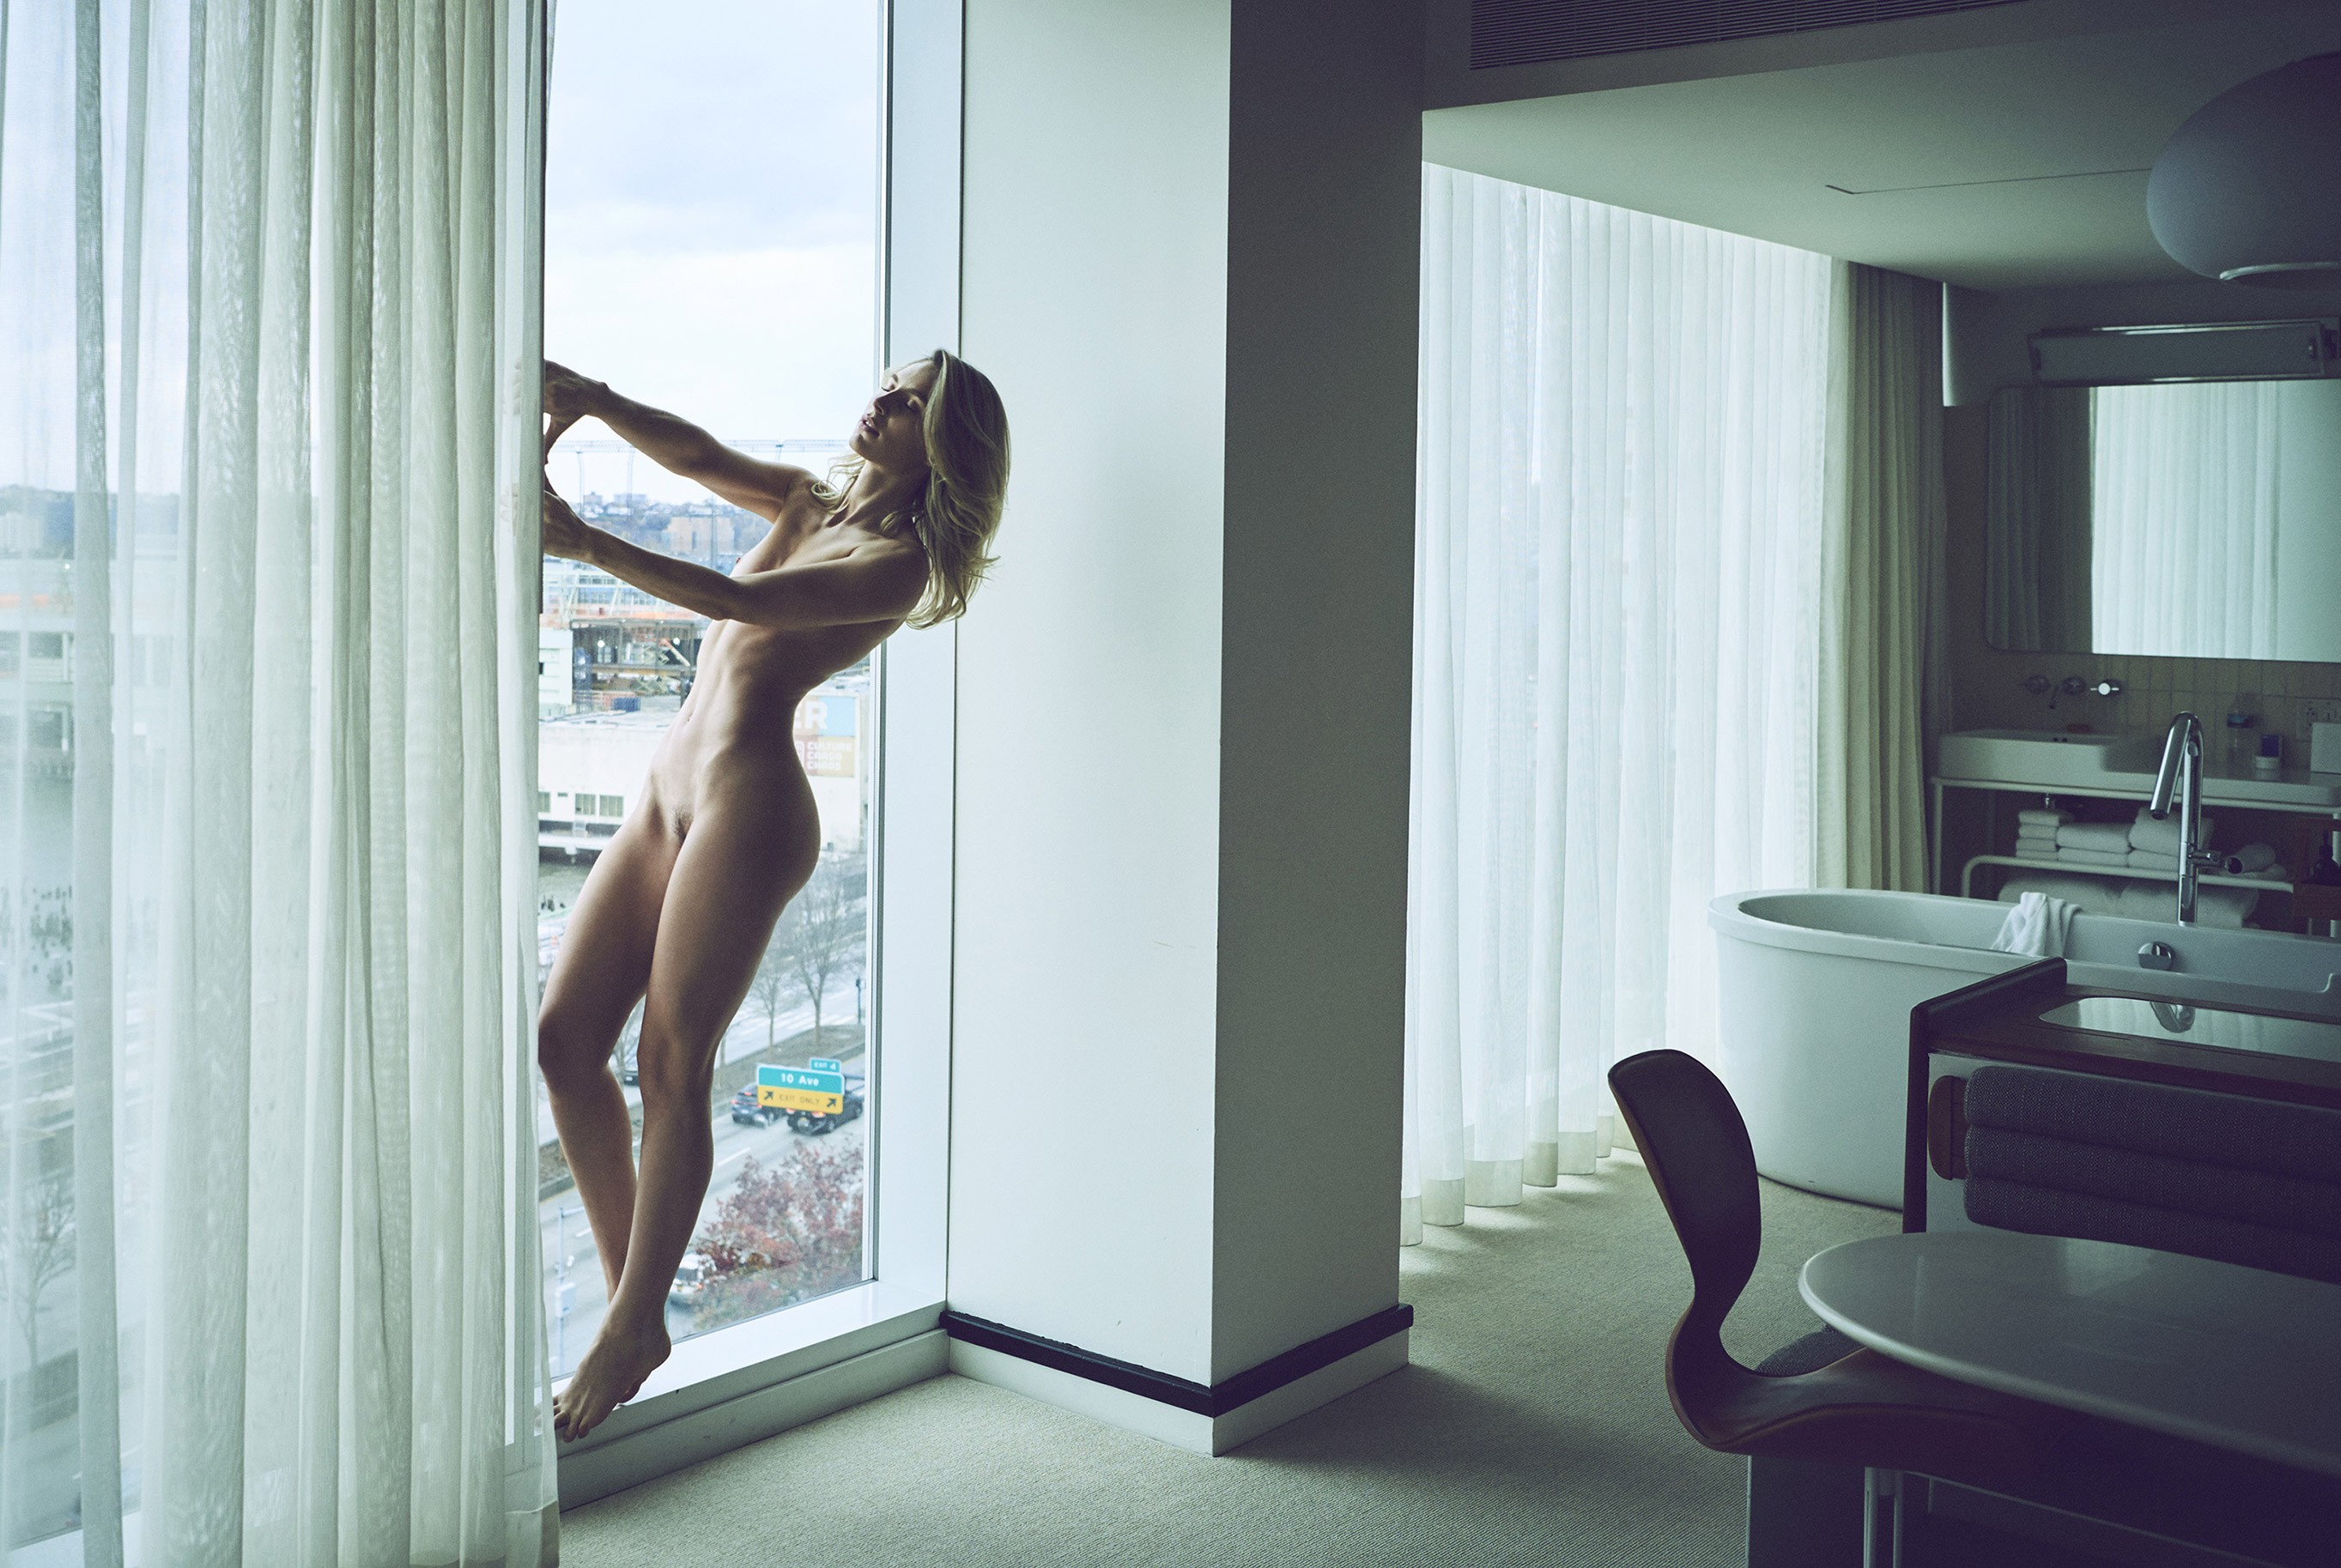 Lauren Bonner nude in New York by Stefan Rappo - The Forest Magazine / Highline